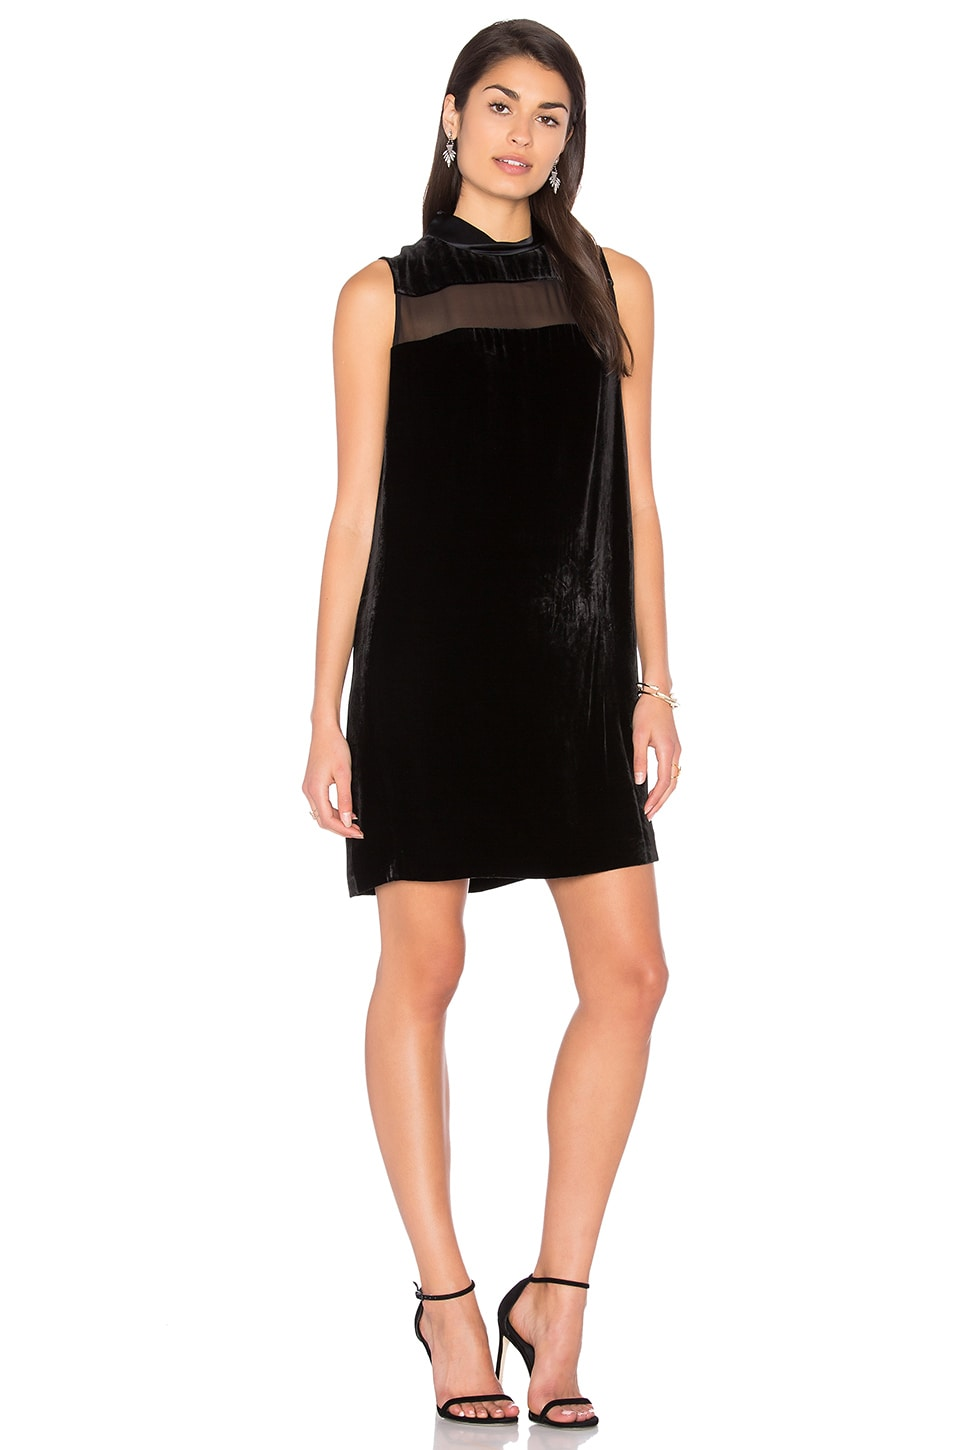 Rag & Bone Danni Dress in Black